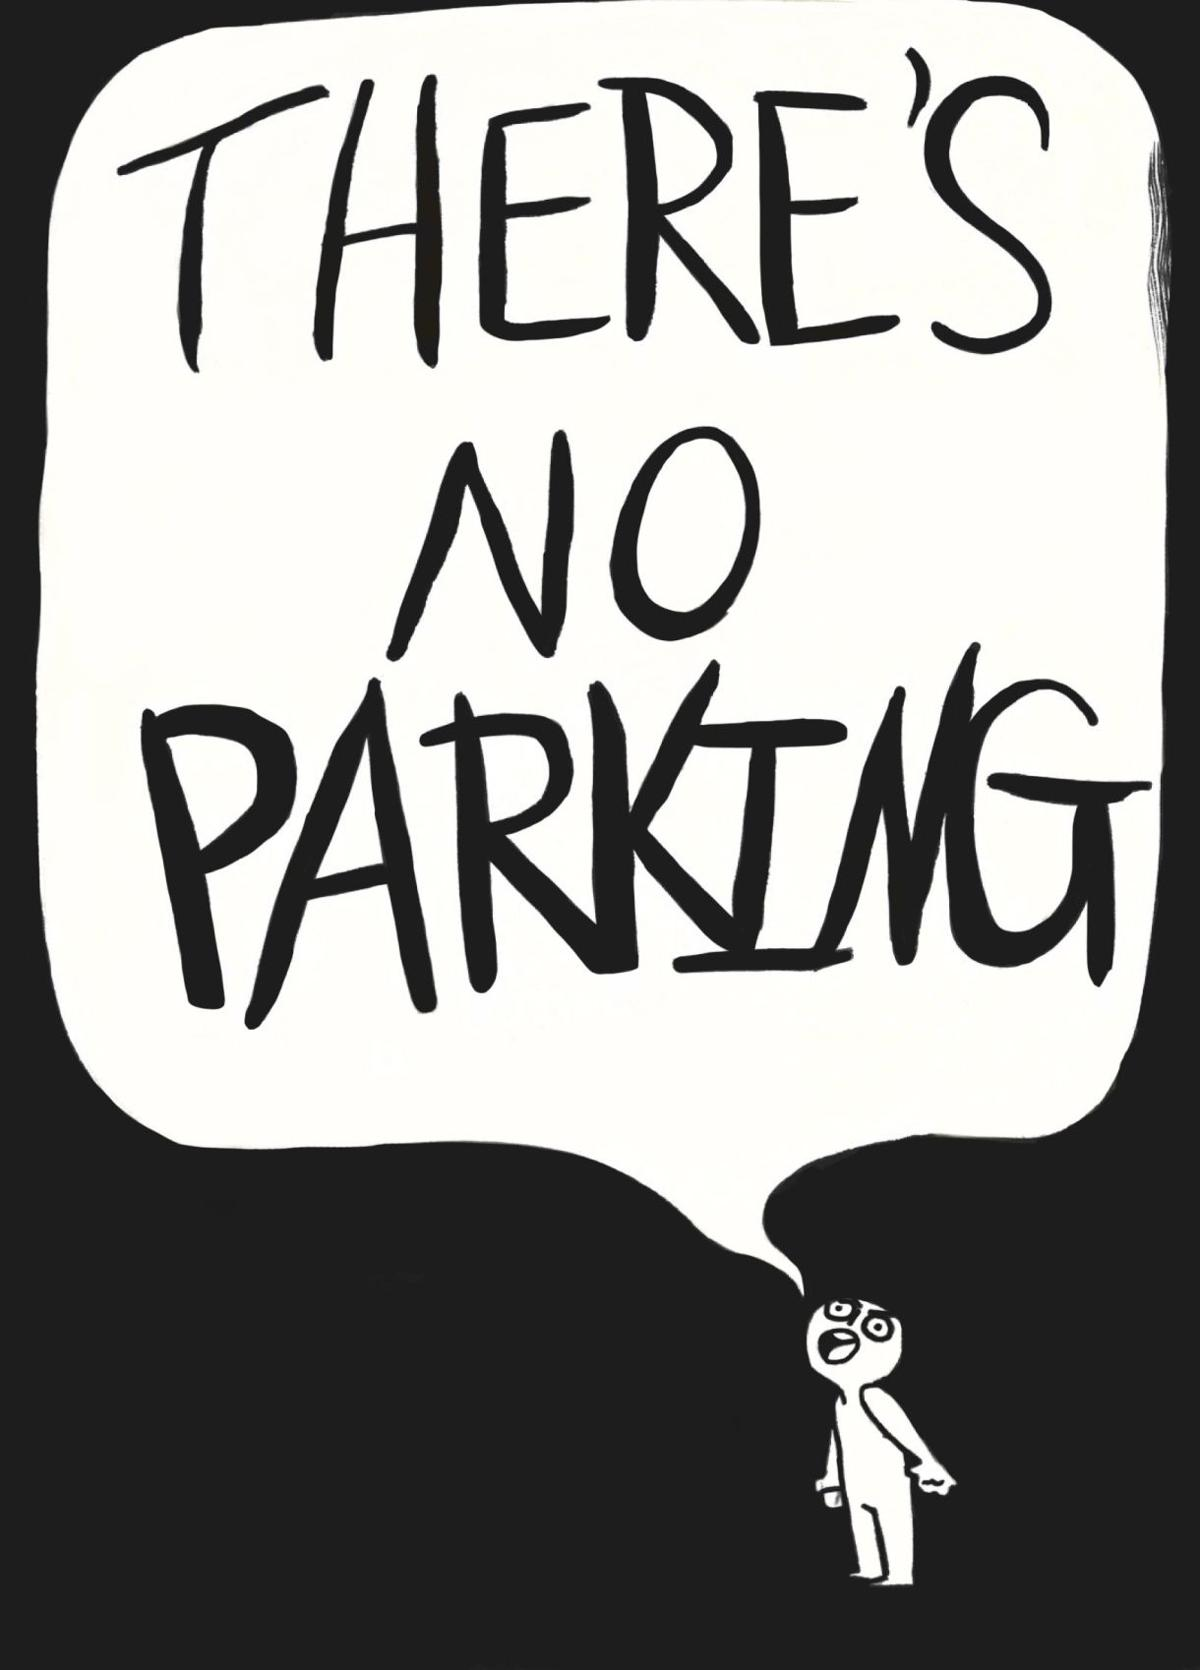 EDITORIAL: Different parking solutions not enough to help students